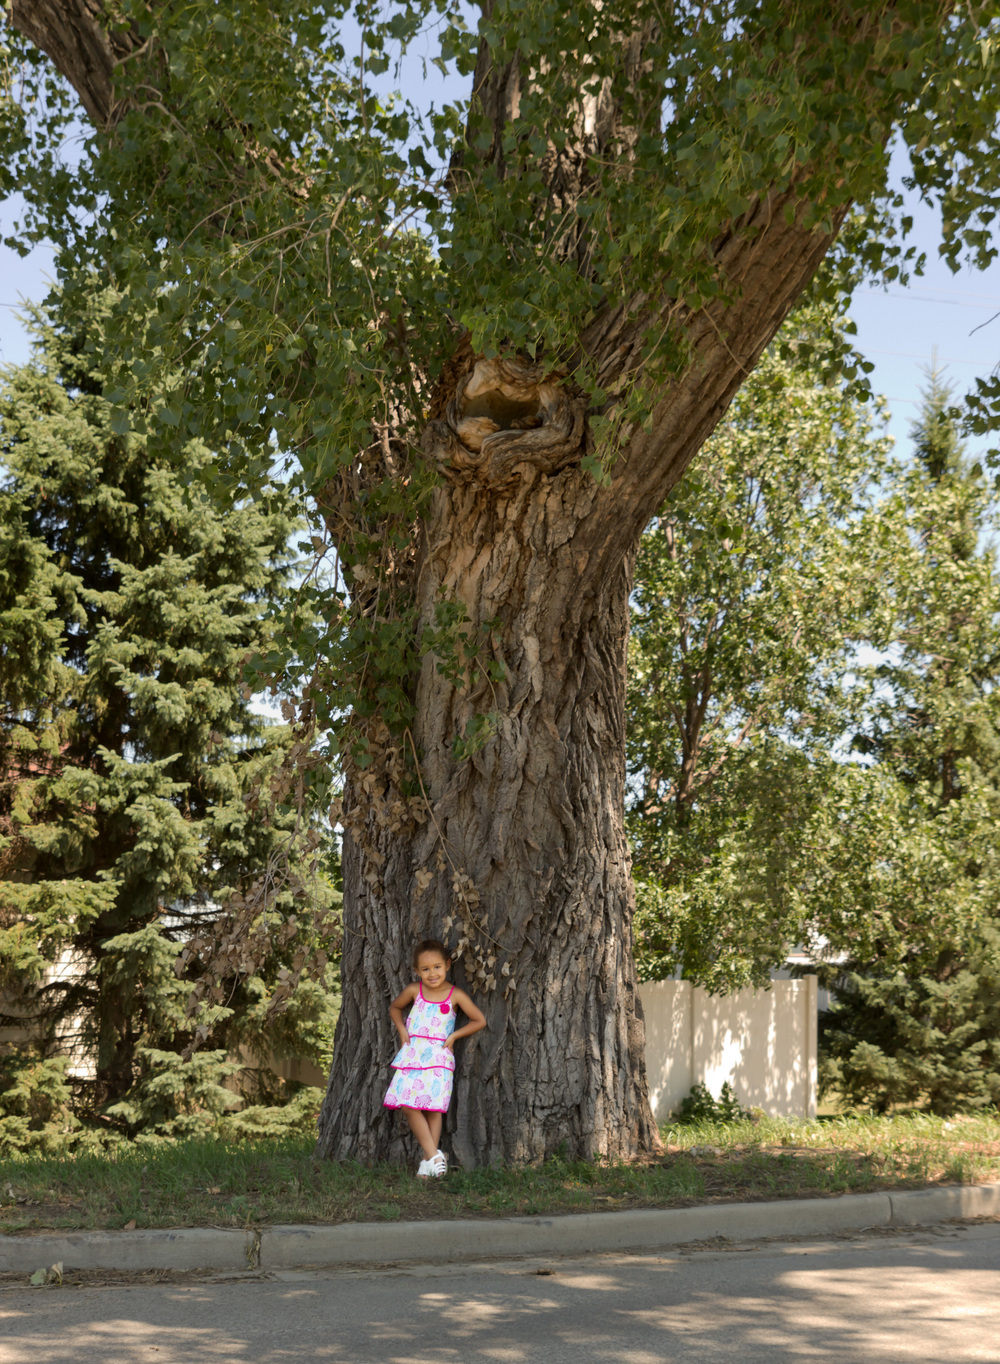 Little girl, BIG tree!